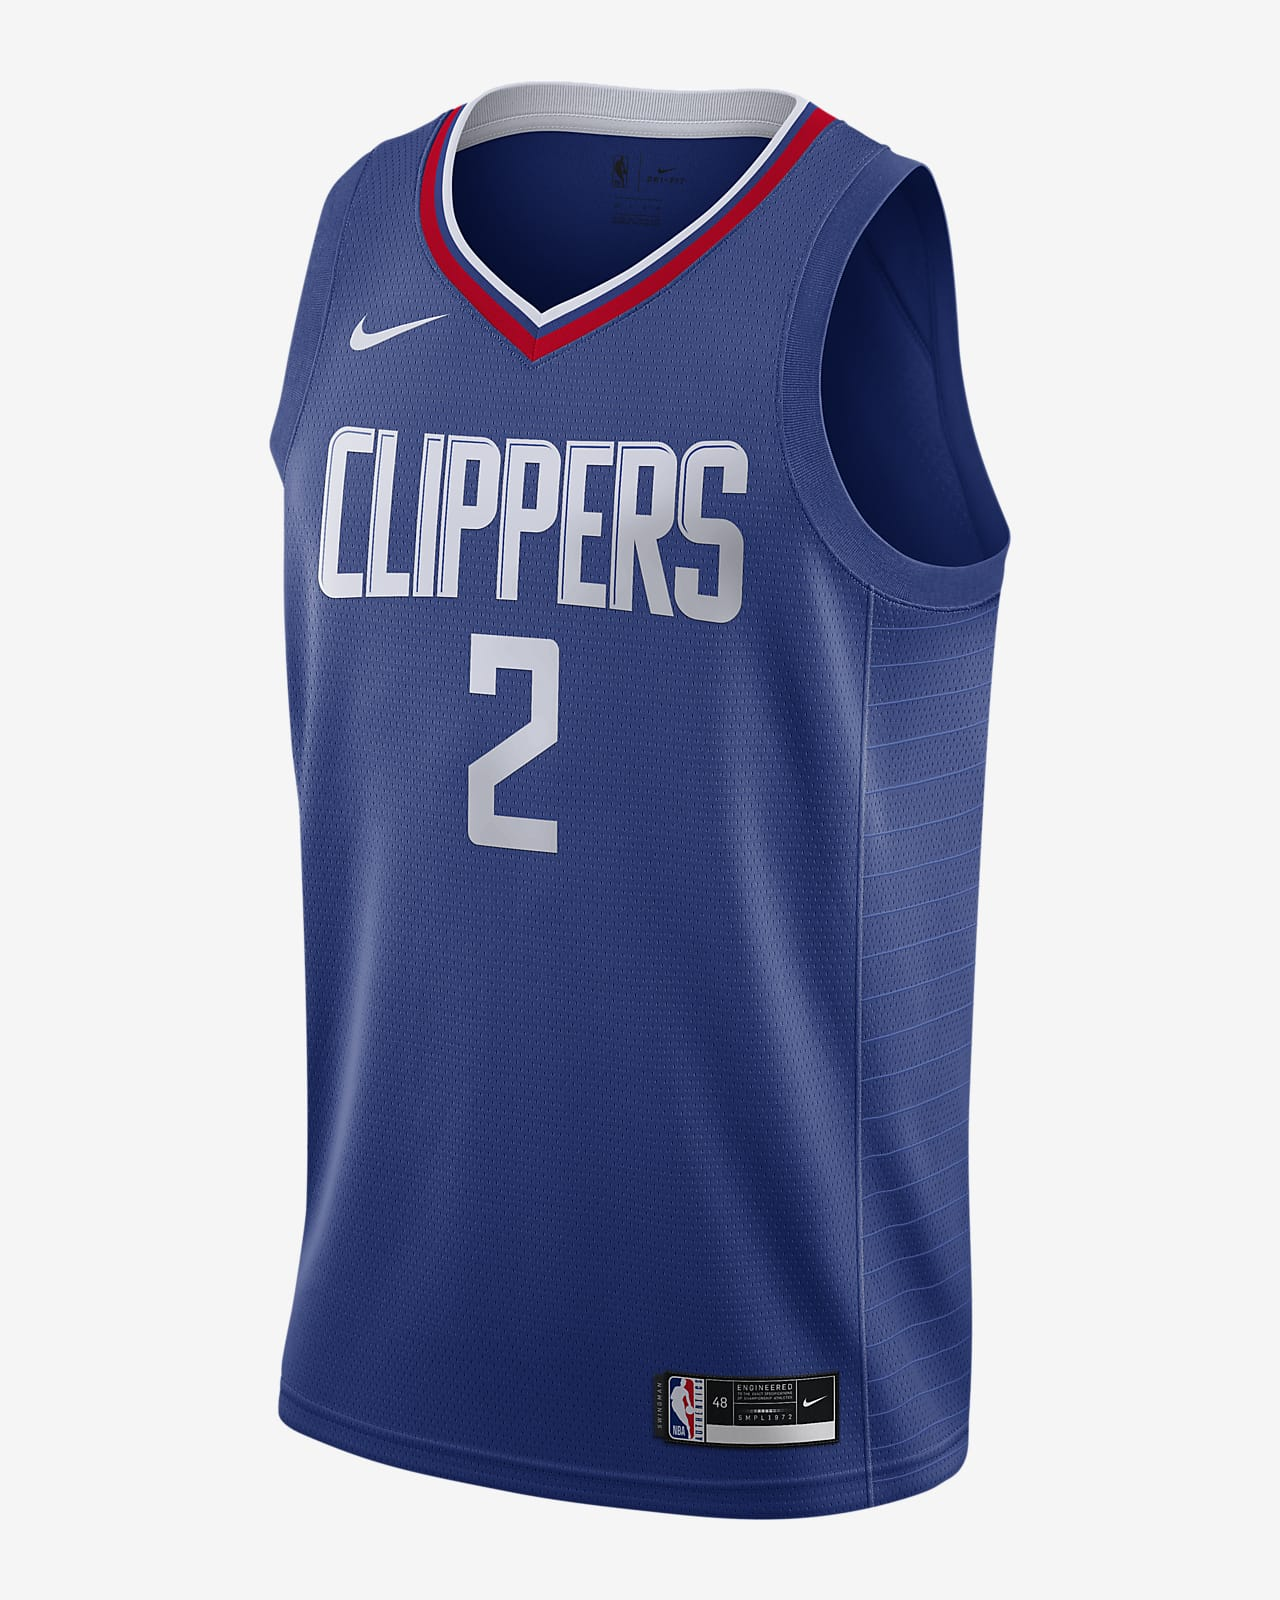 Kawhi Leonard Clippers Icon Edition 2020 Nike NBA Swingman Jersey